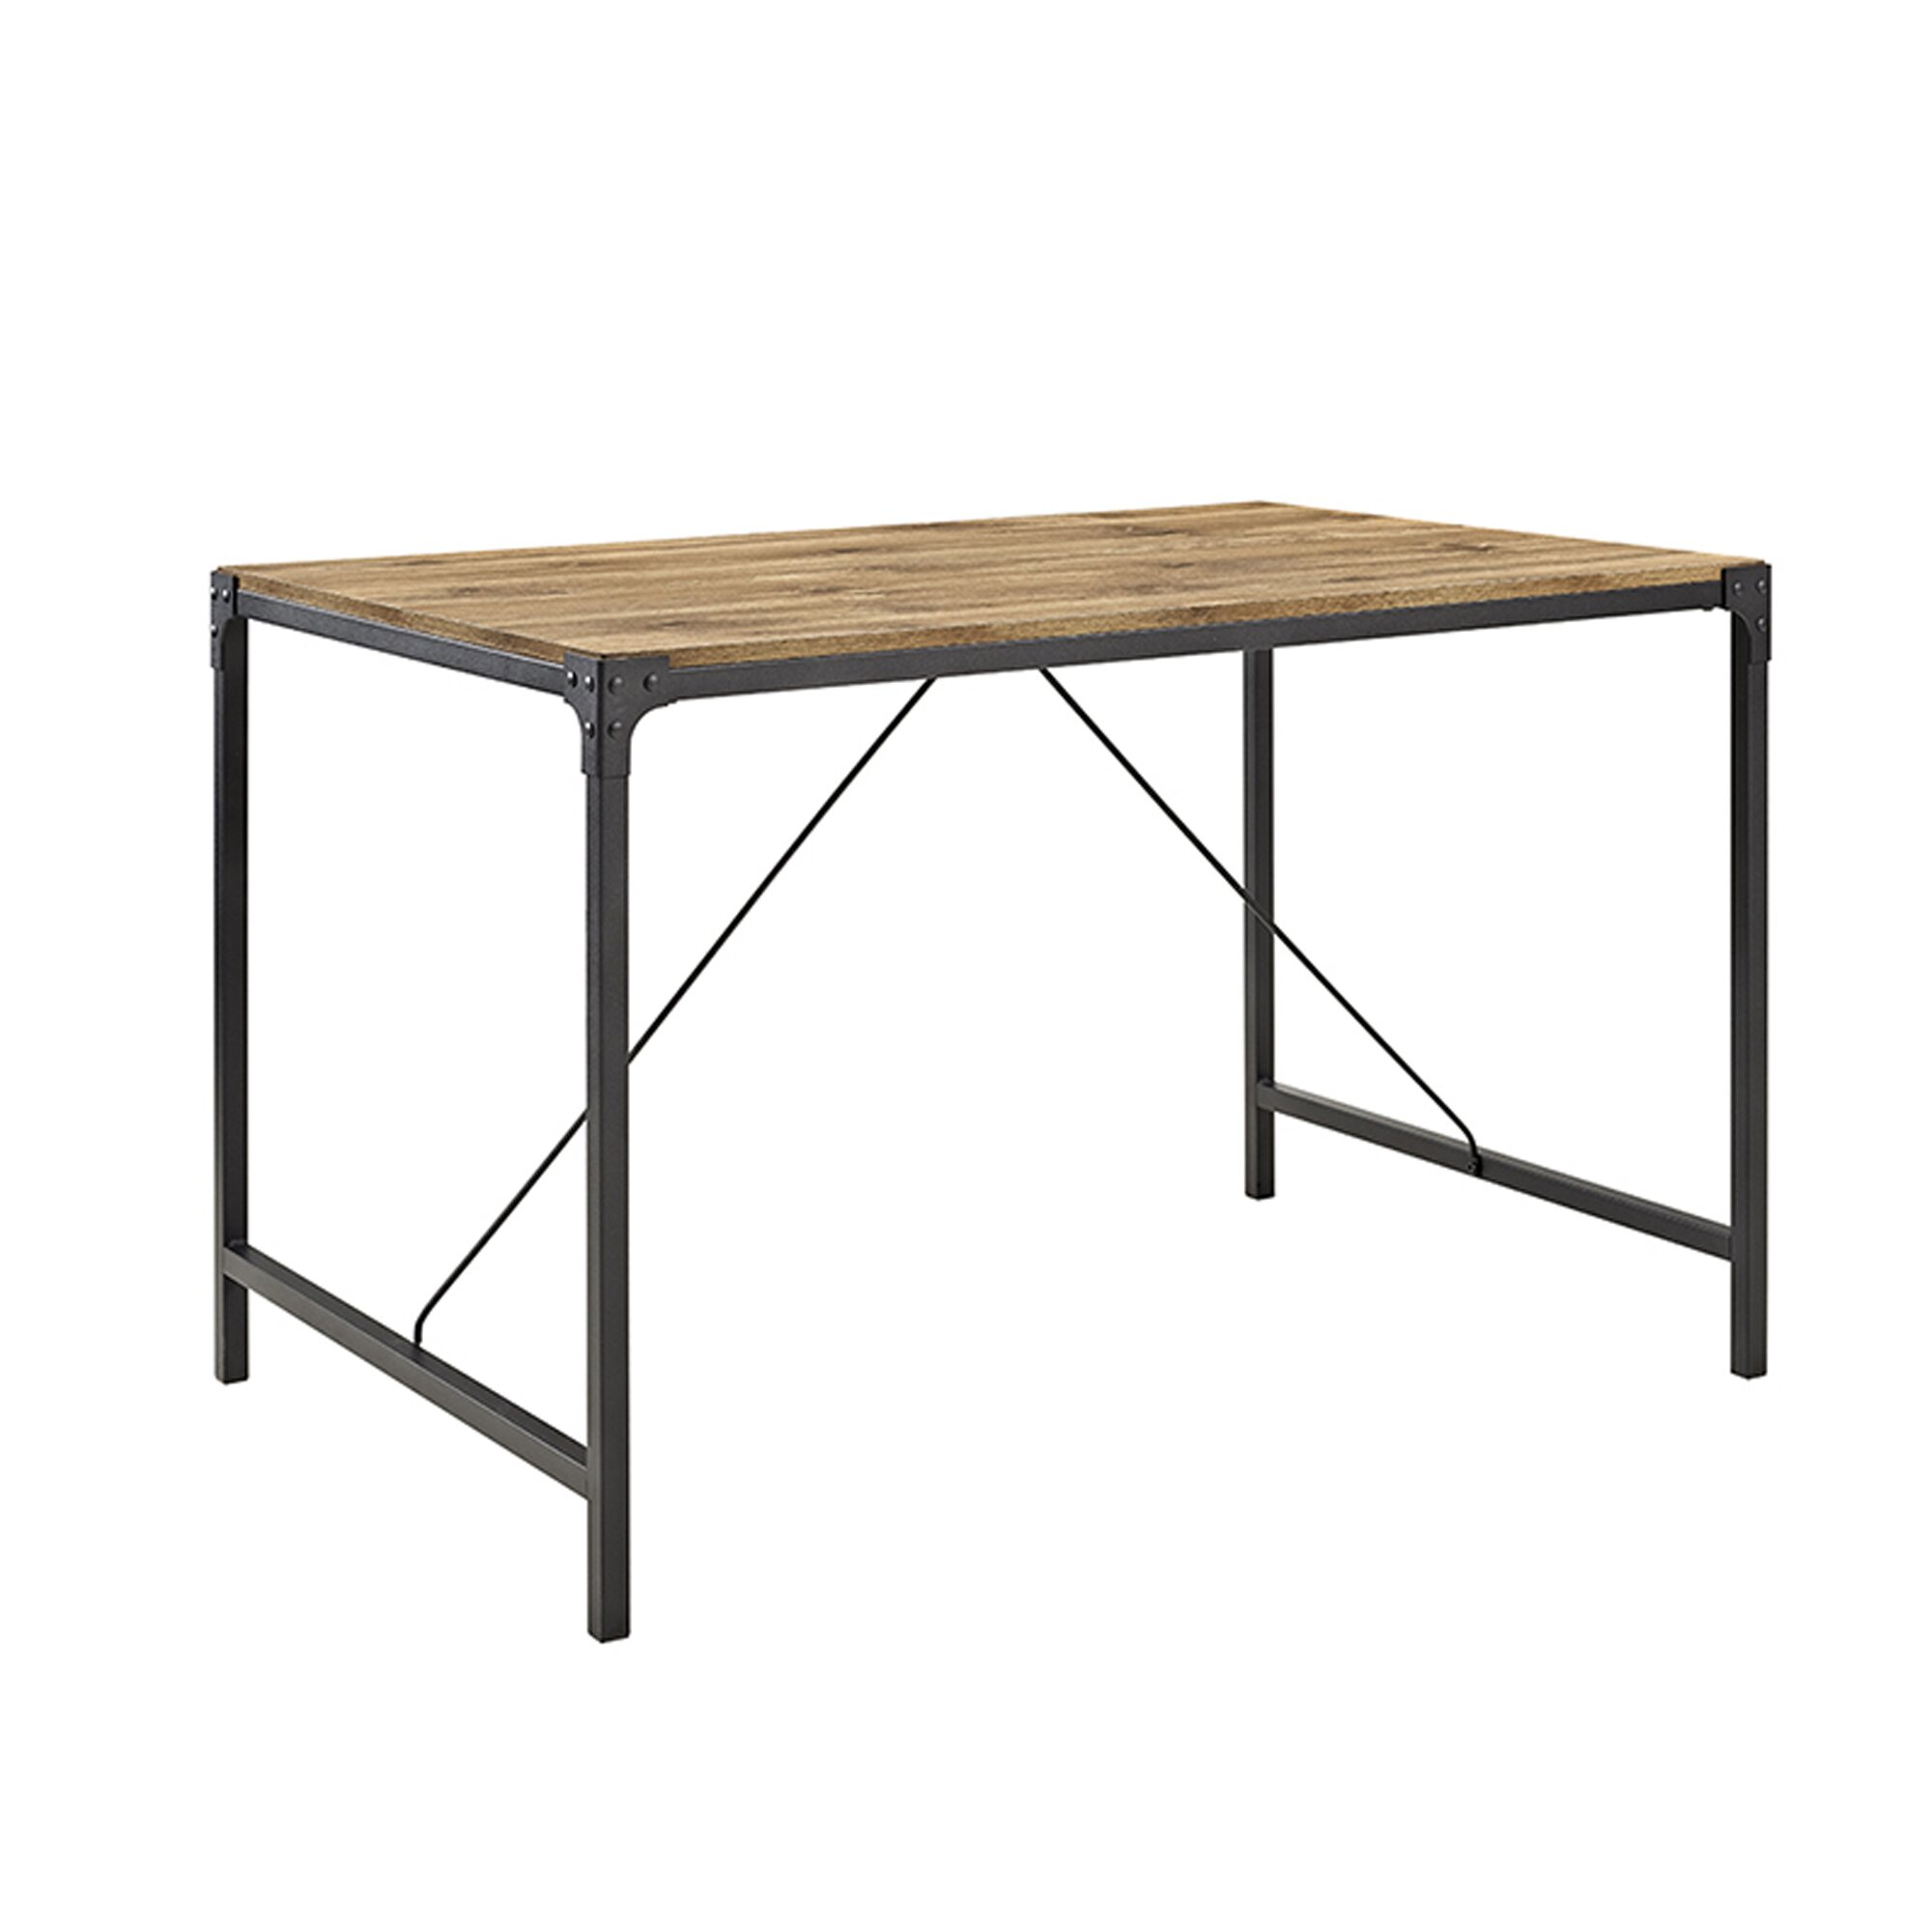 Iron Wood Dining Table Madeline Angle Iron And Wood Dining Table Reviews Allmodern